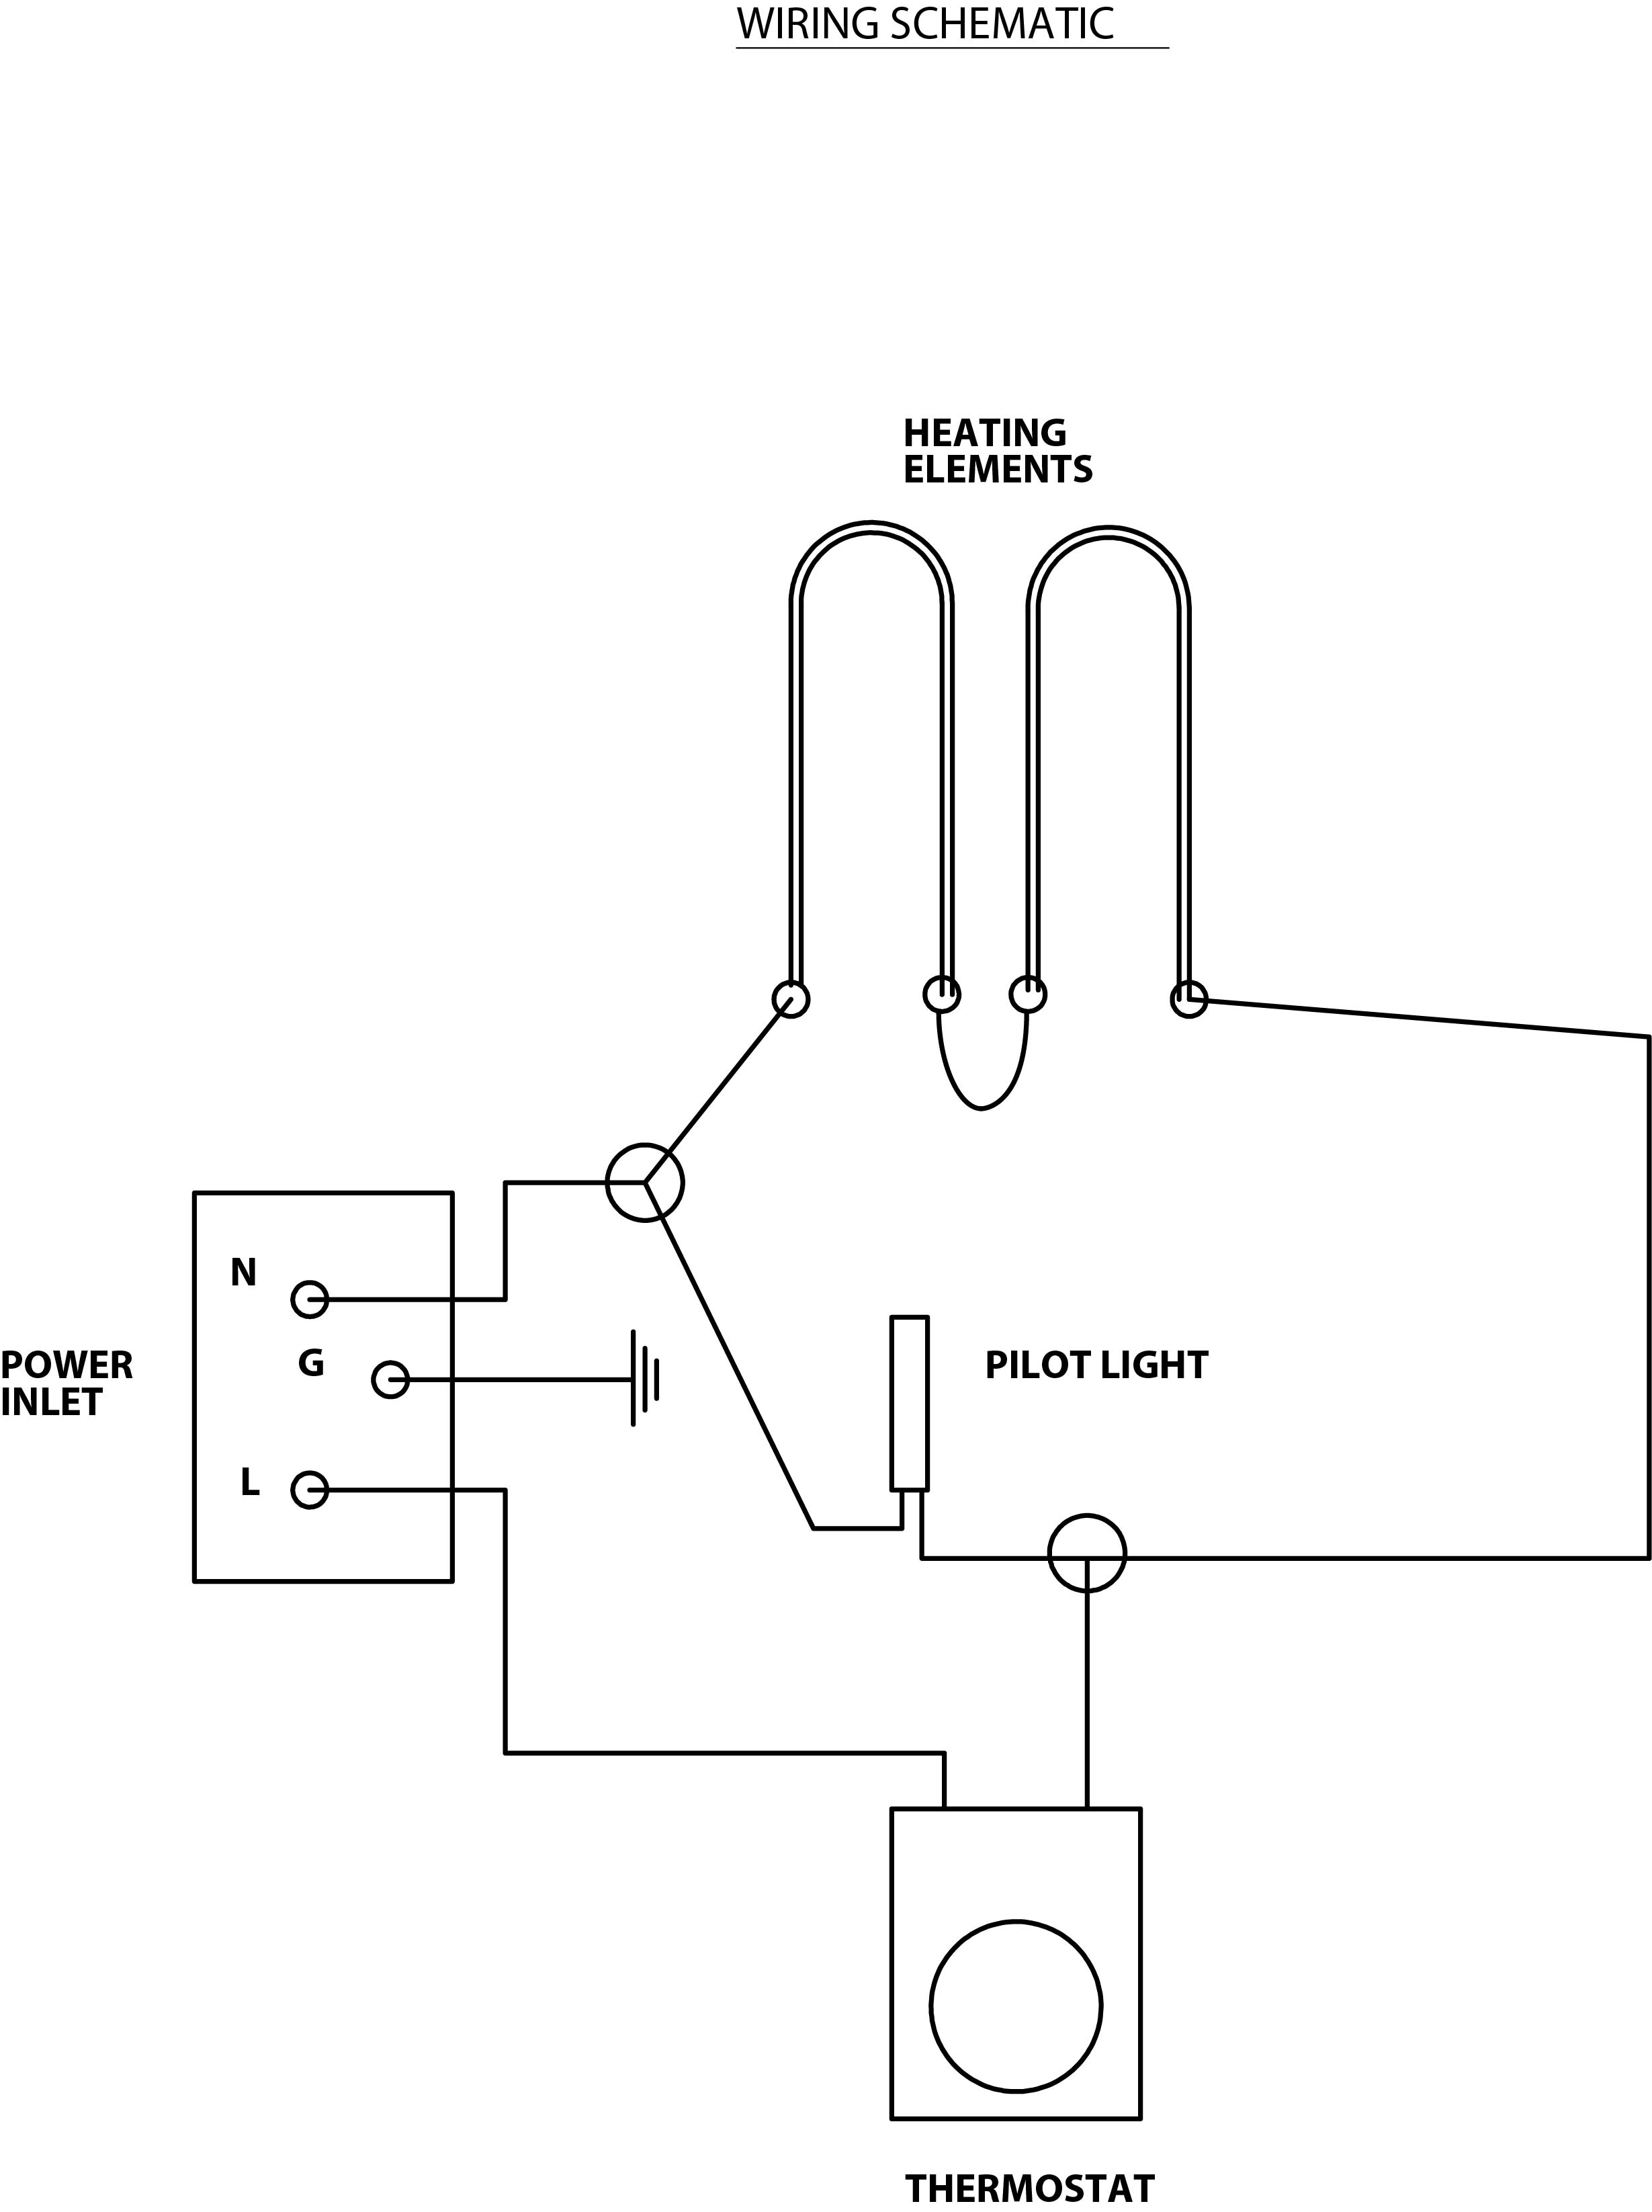 wiring diagram 230 volt plug choice image